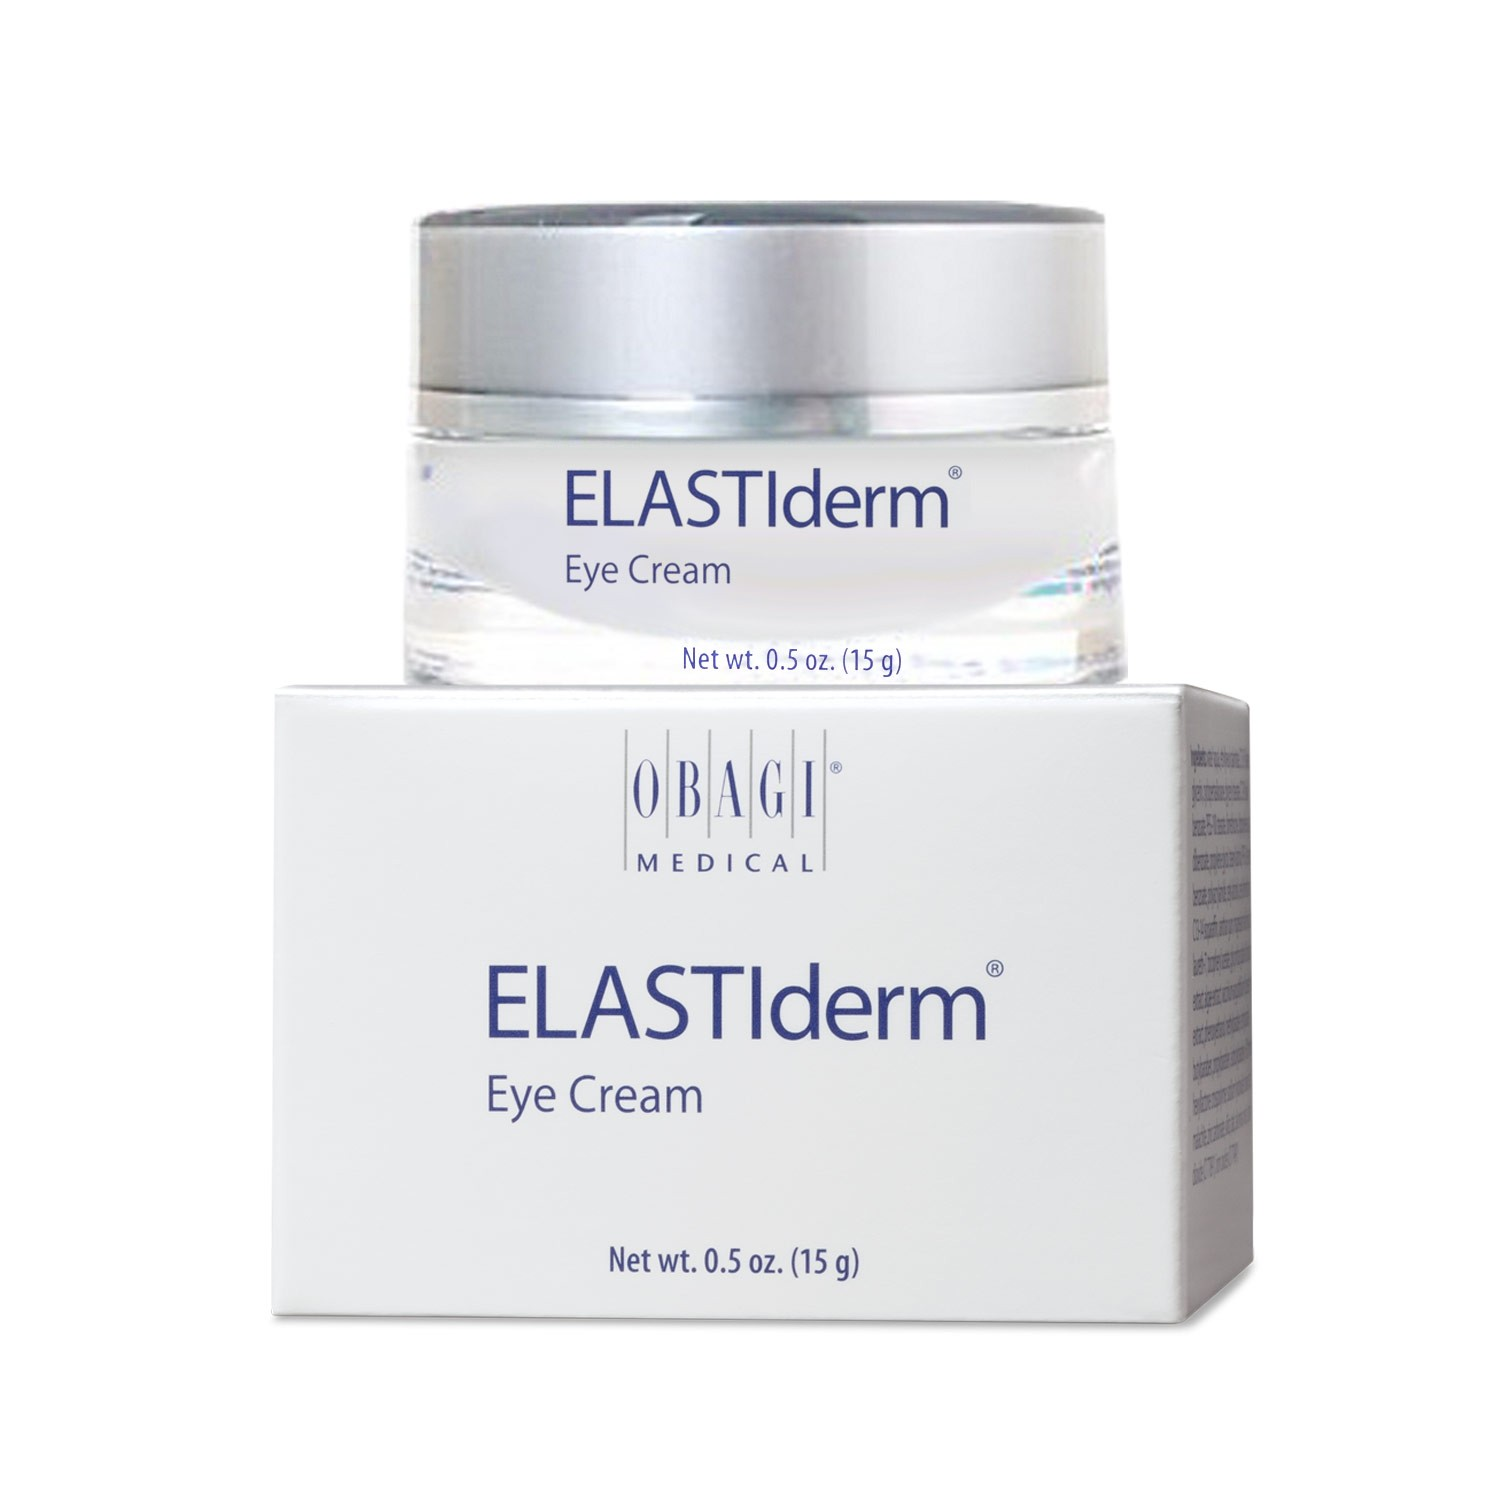 Obagi ELASTIderm Eye Cream 0.5 oz. (15g)  PRICE MATCH GUARANTEE!